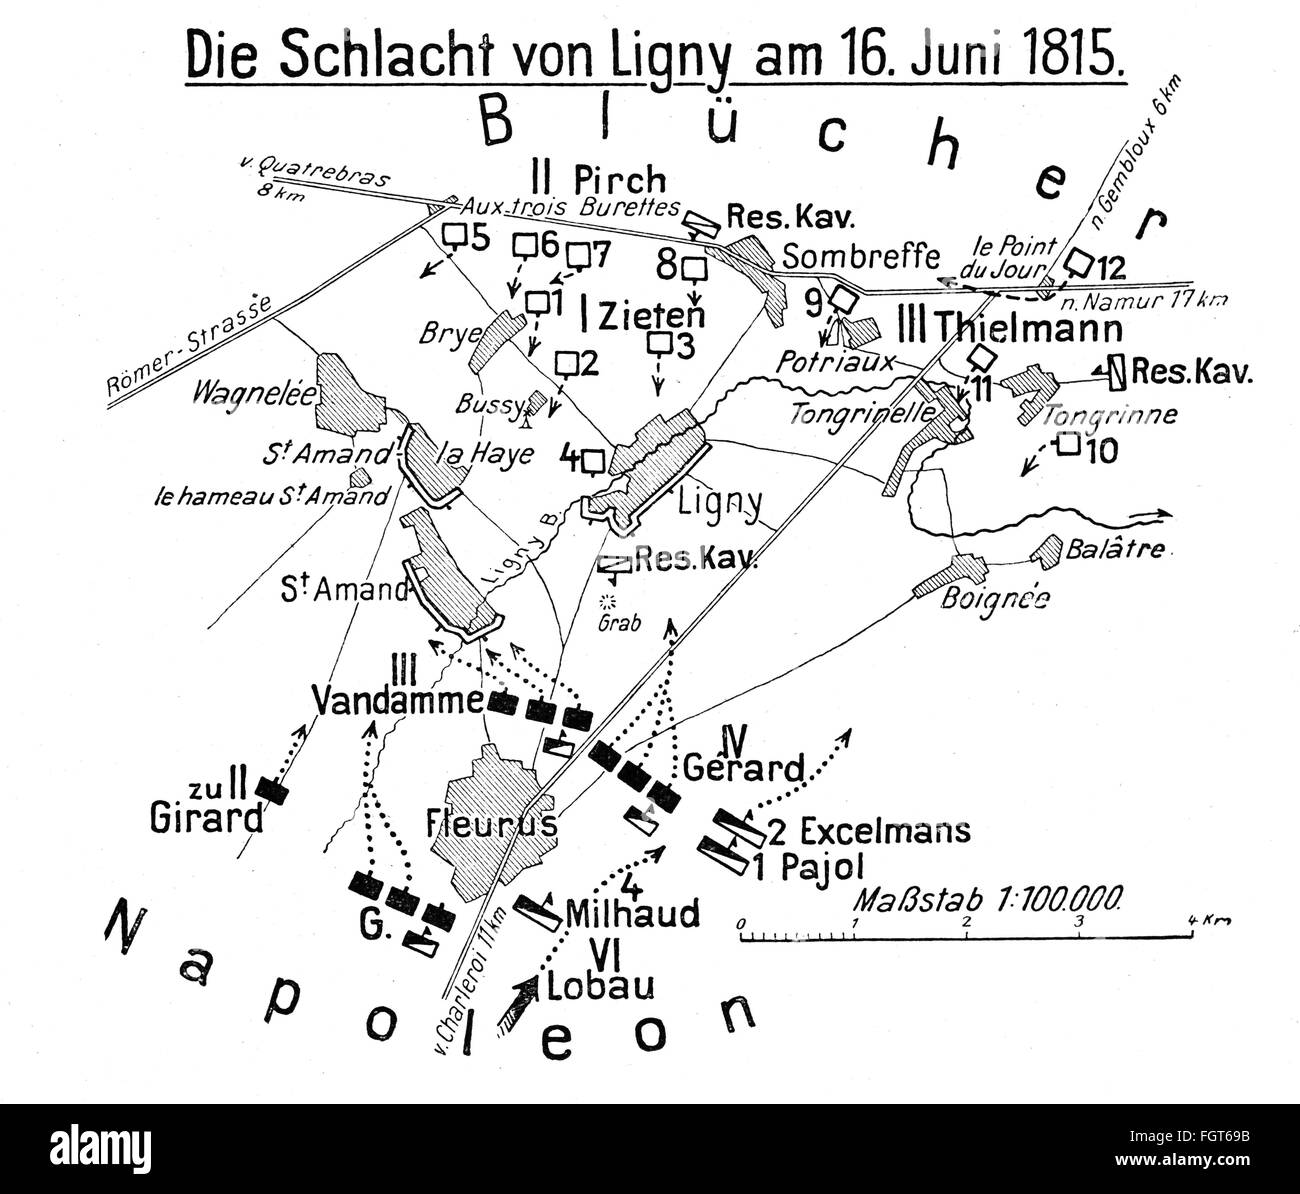 War of the Seventh Coalition 1815, Battle of Ligny, 16.6.1815, plan of action, drawing, 1913, Additional-Rights - Stock Image